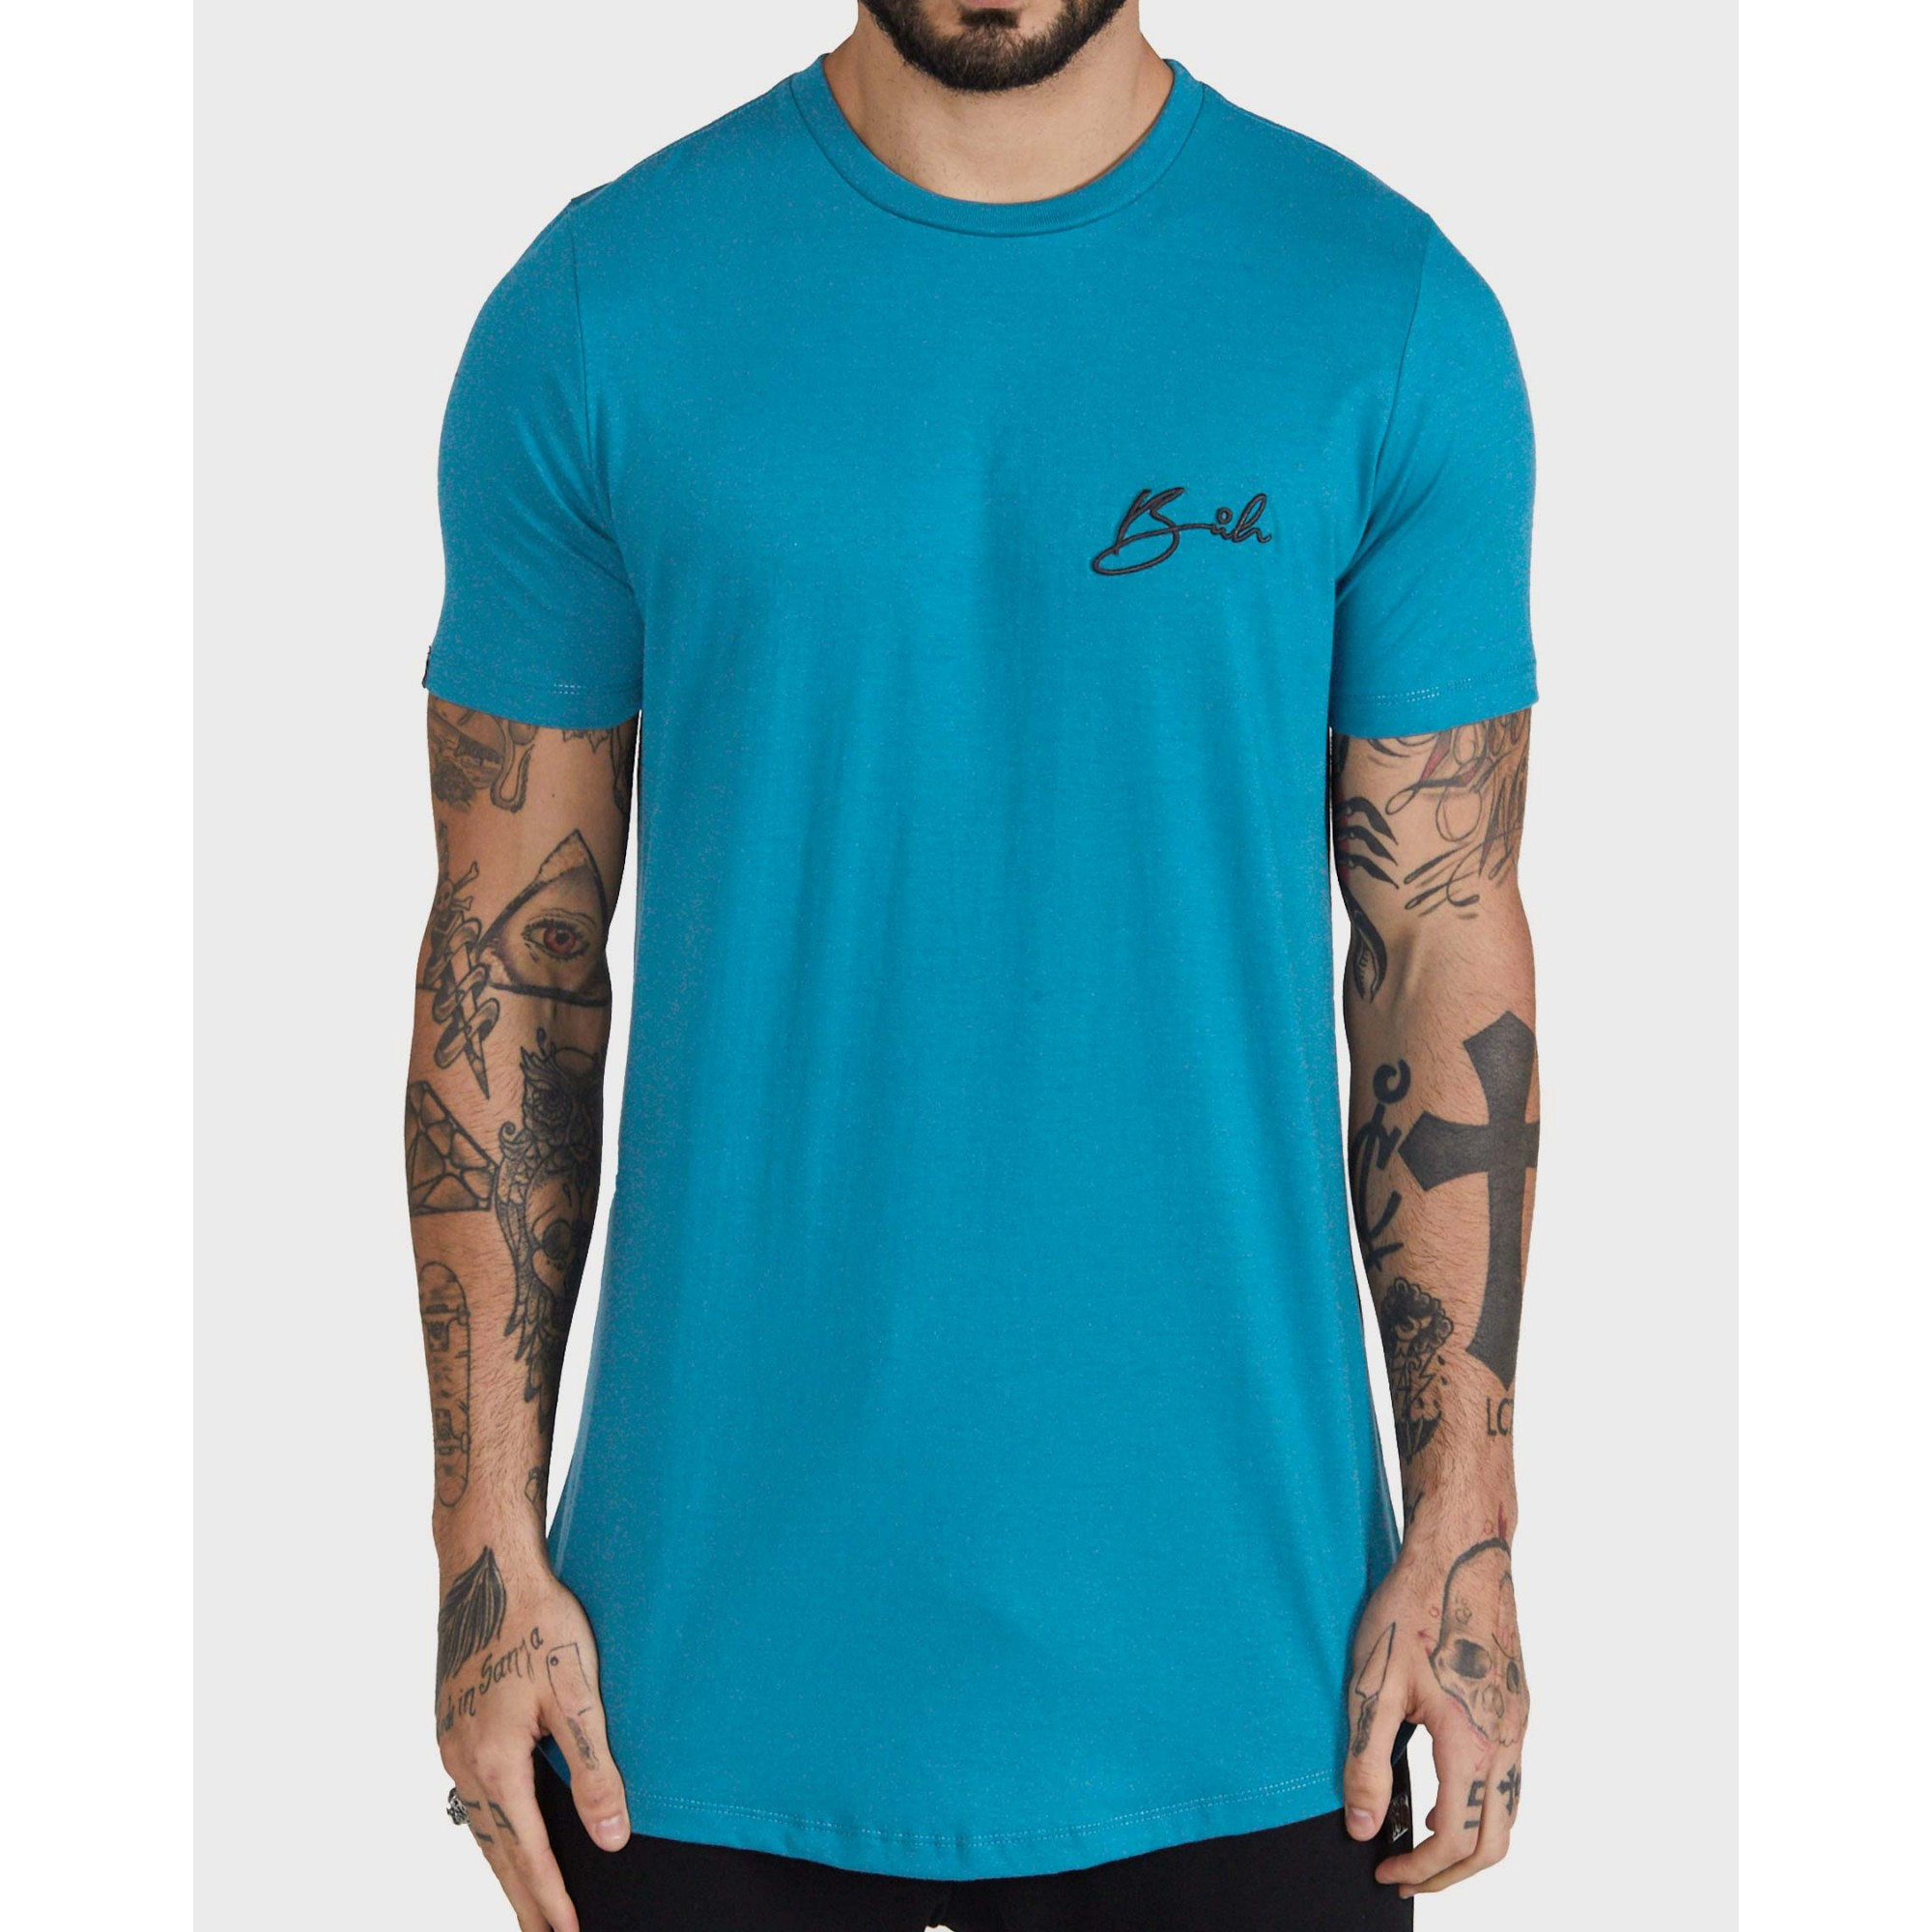 Camiseta Buh Bordado Blue